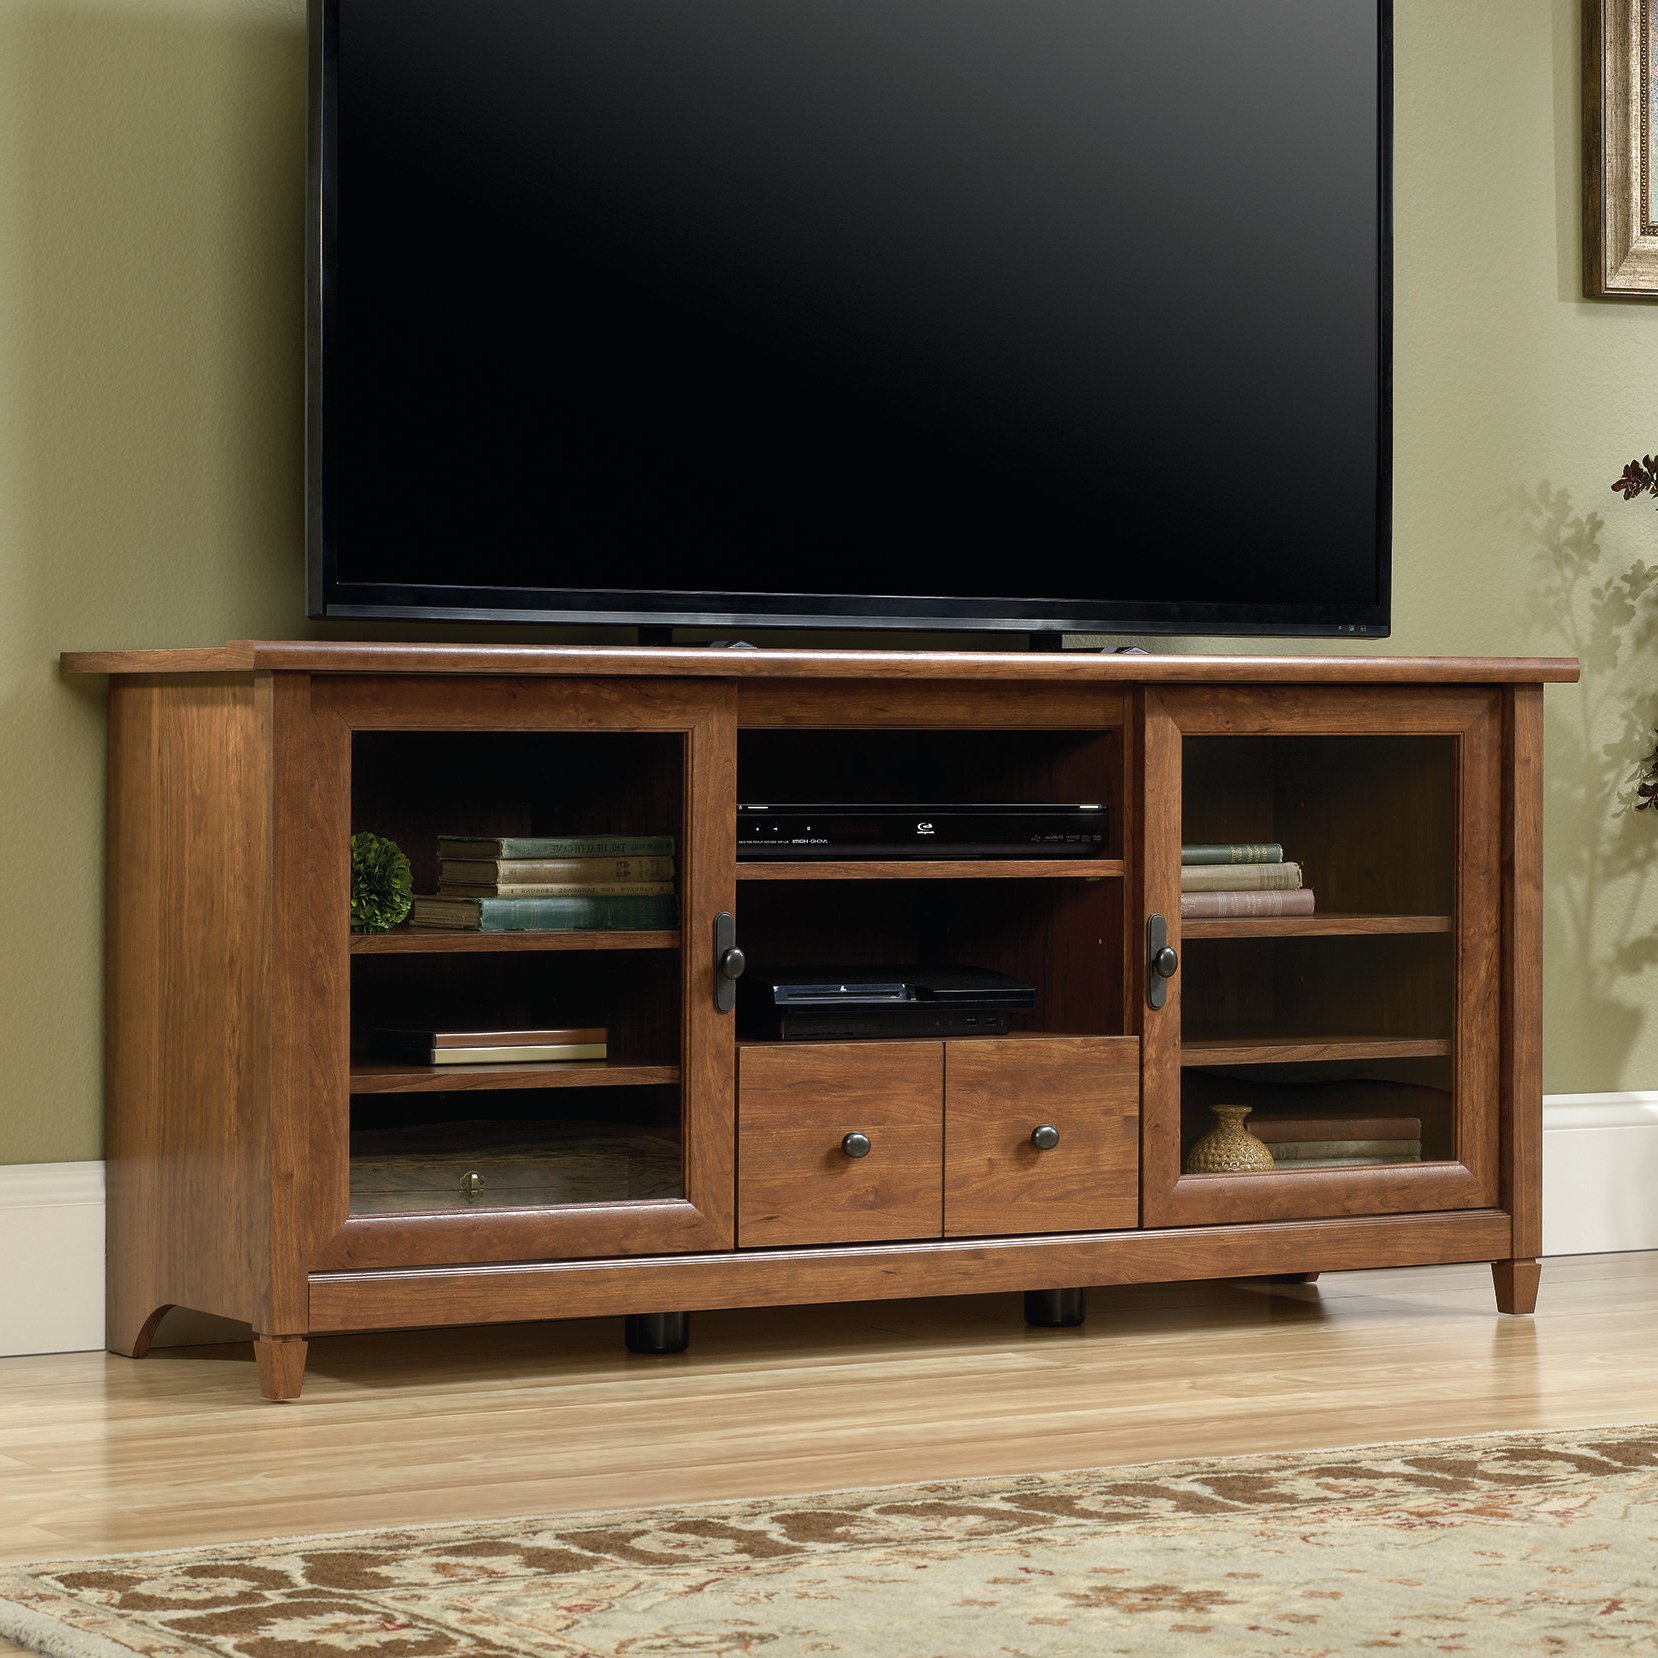 End Table And Tv Stand Set | Wayfair Intended For Combs 63 Inch Tv Stands (View 19 of 20)